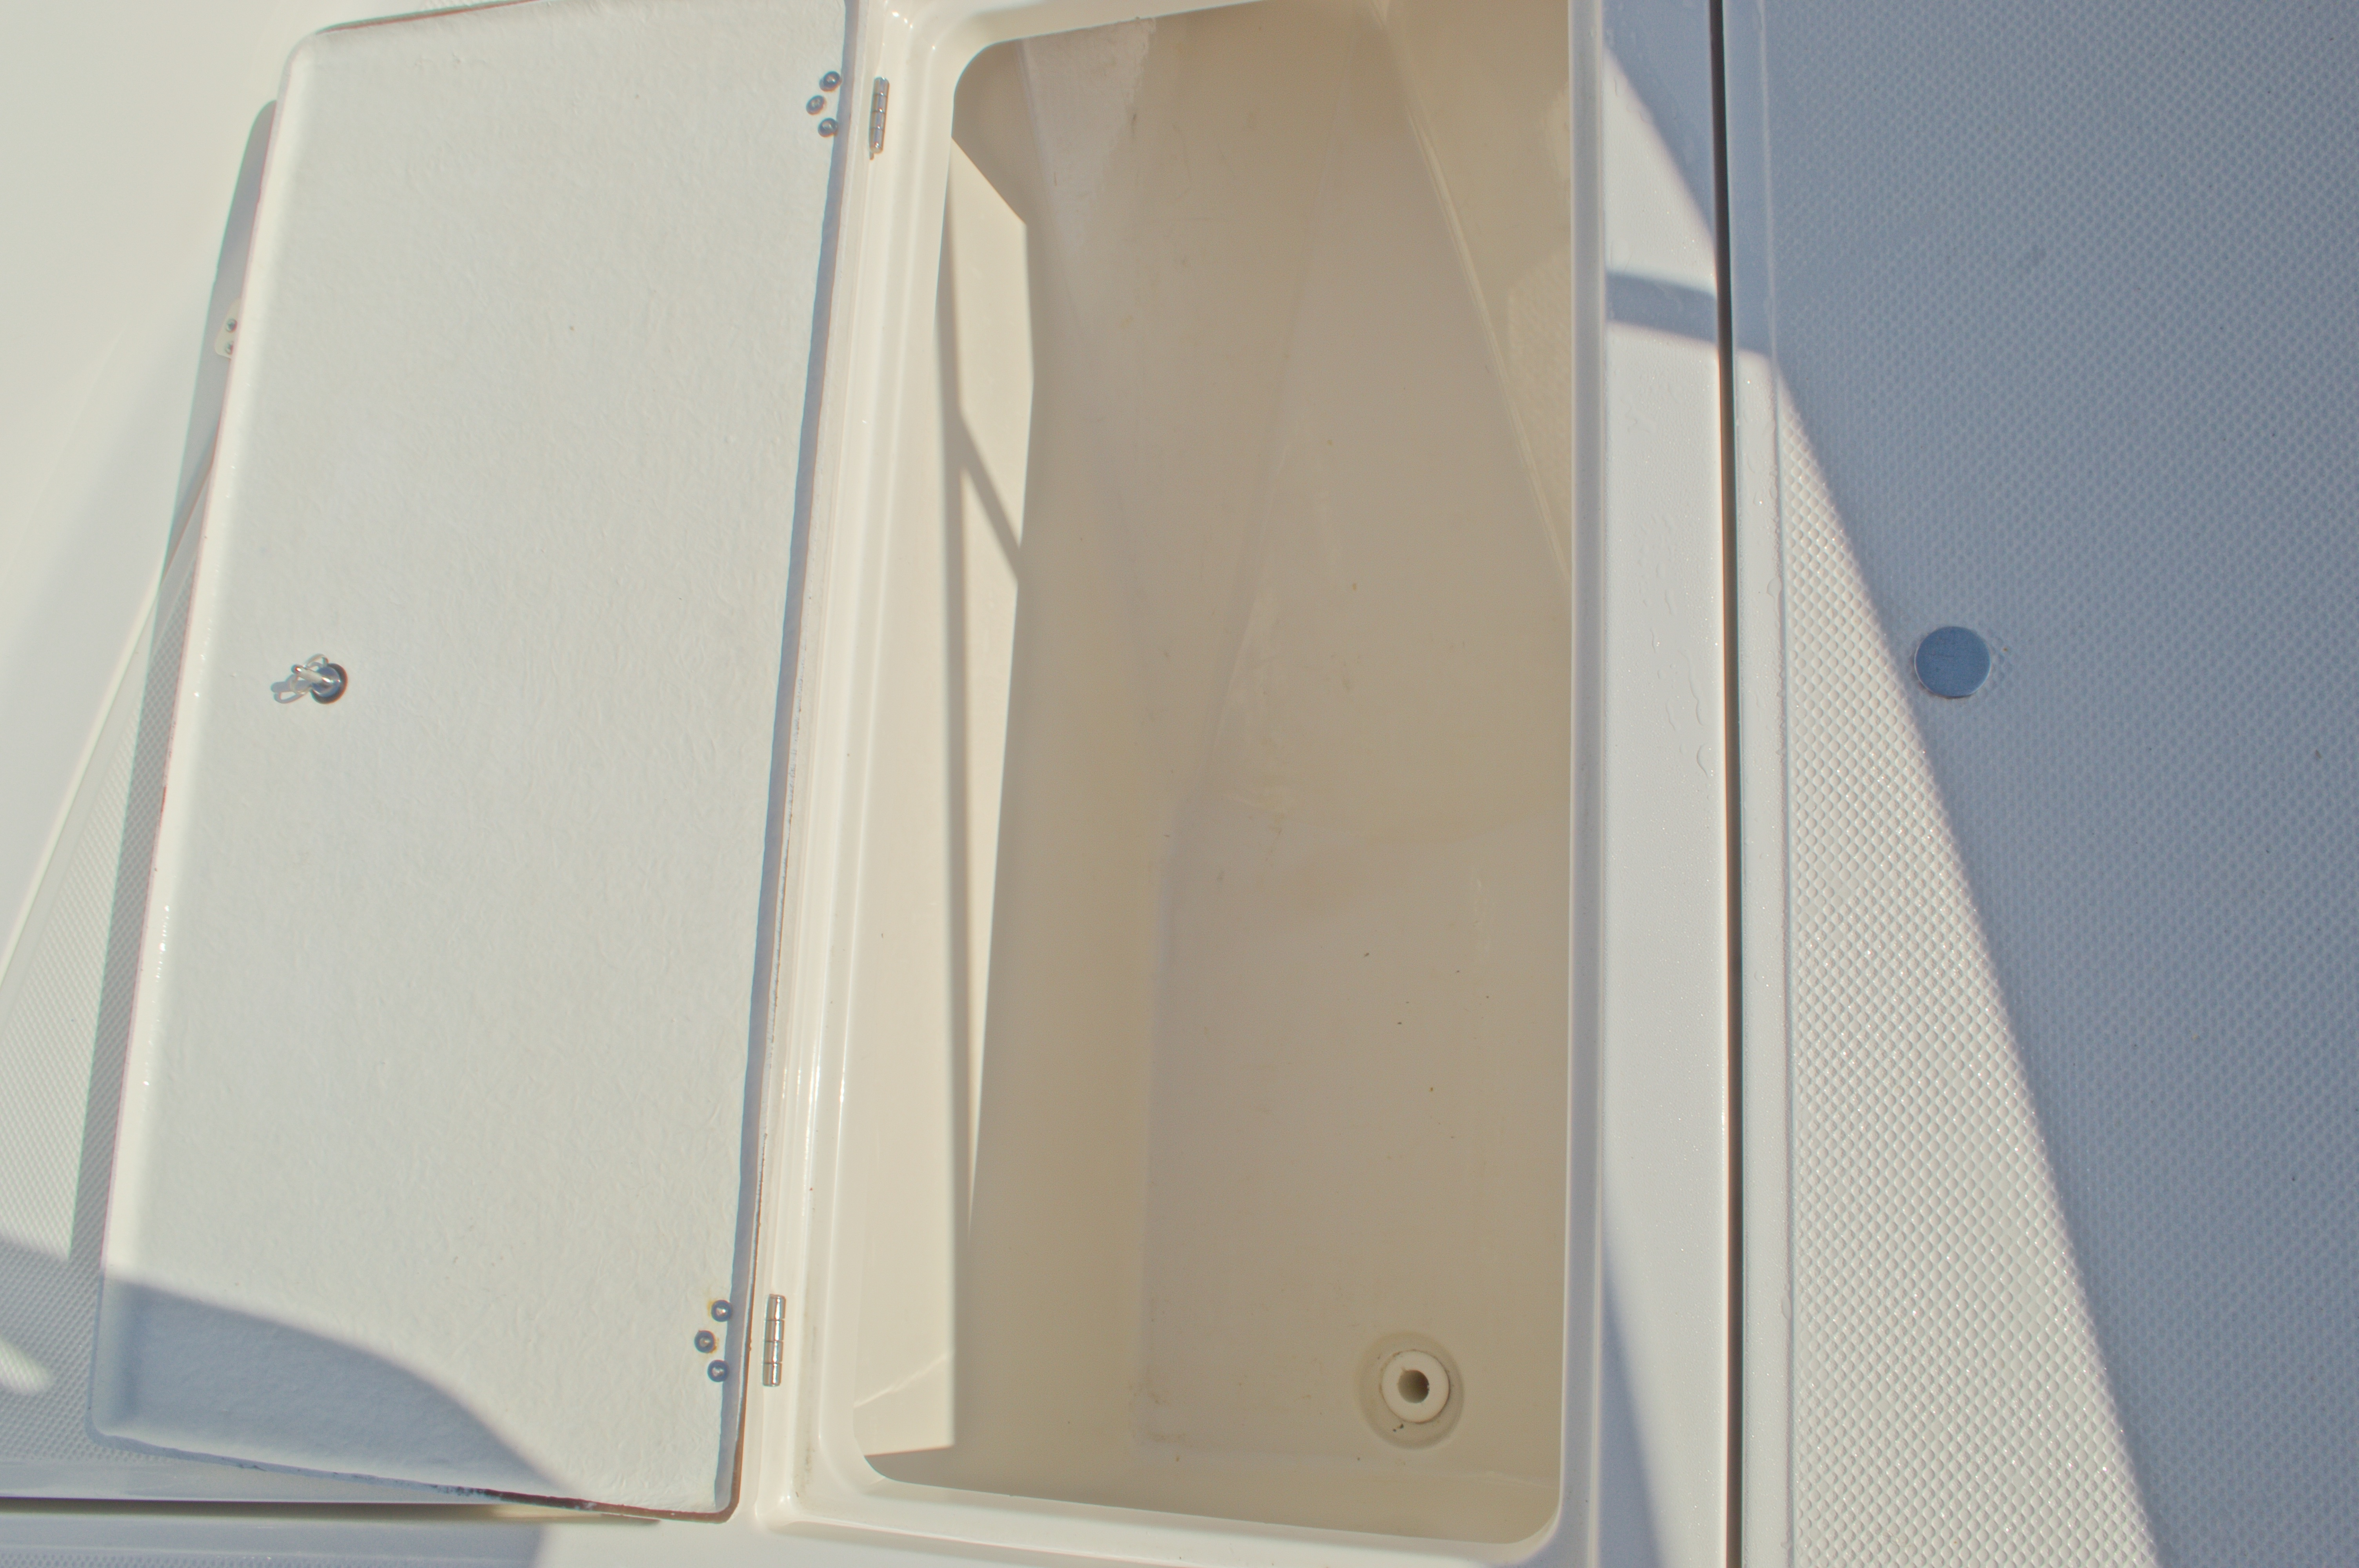 Thumbnail 48 for Used 2009 Key West 225 Center Console boat for sale in West Palm Beach, FL